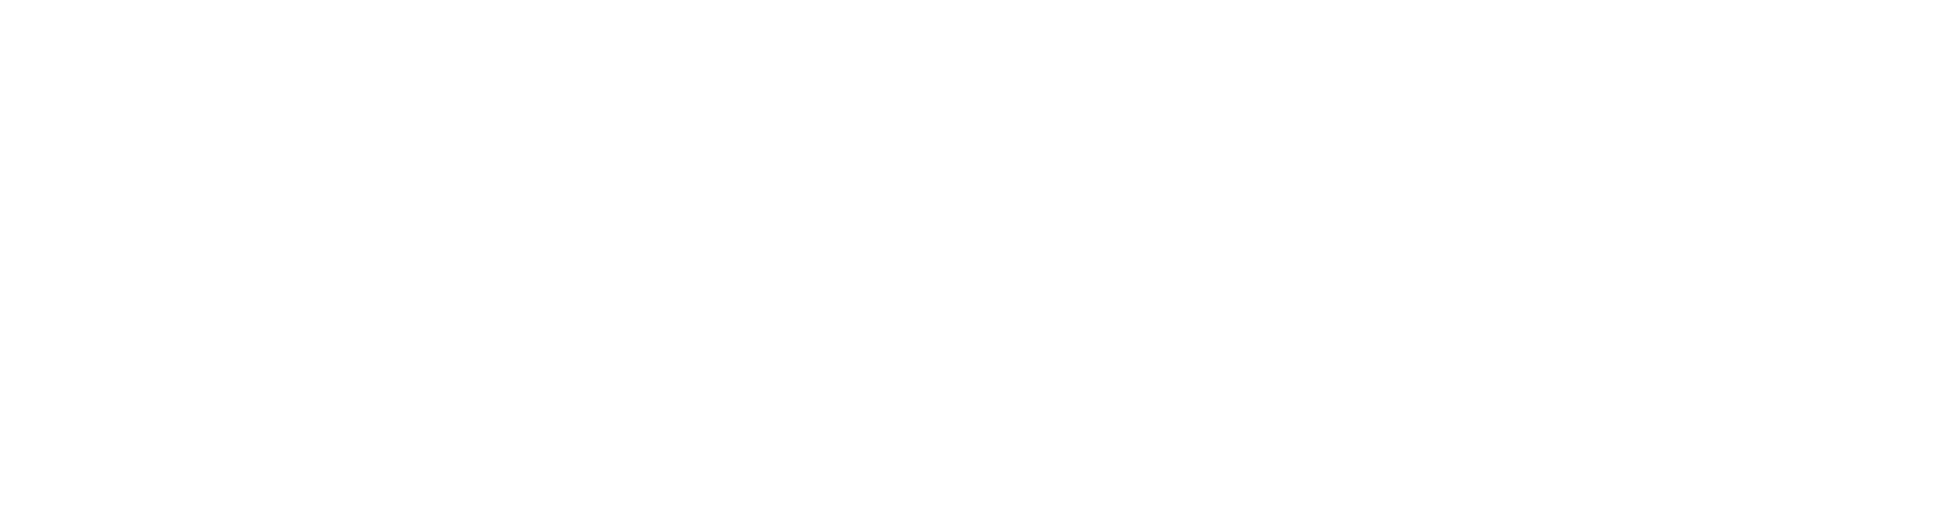 fitvine-wine-logo-update-2.png